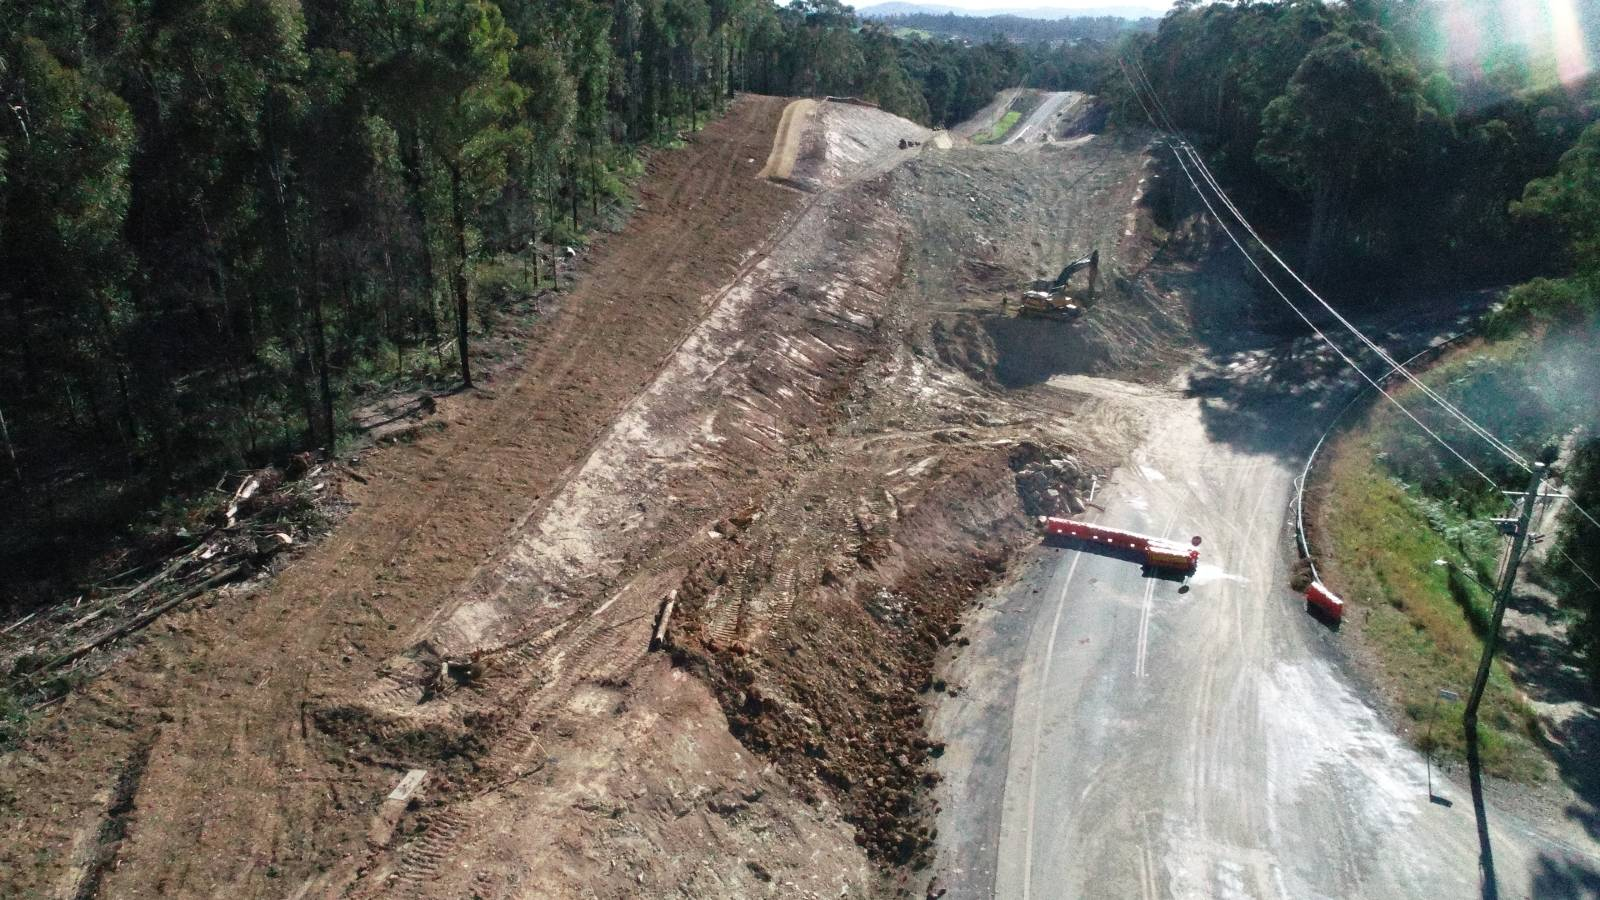 An aerial photo shows major earthworks underway cutting a road through a hill